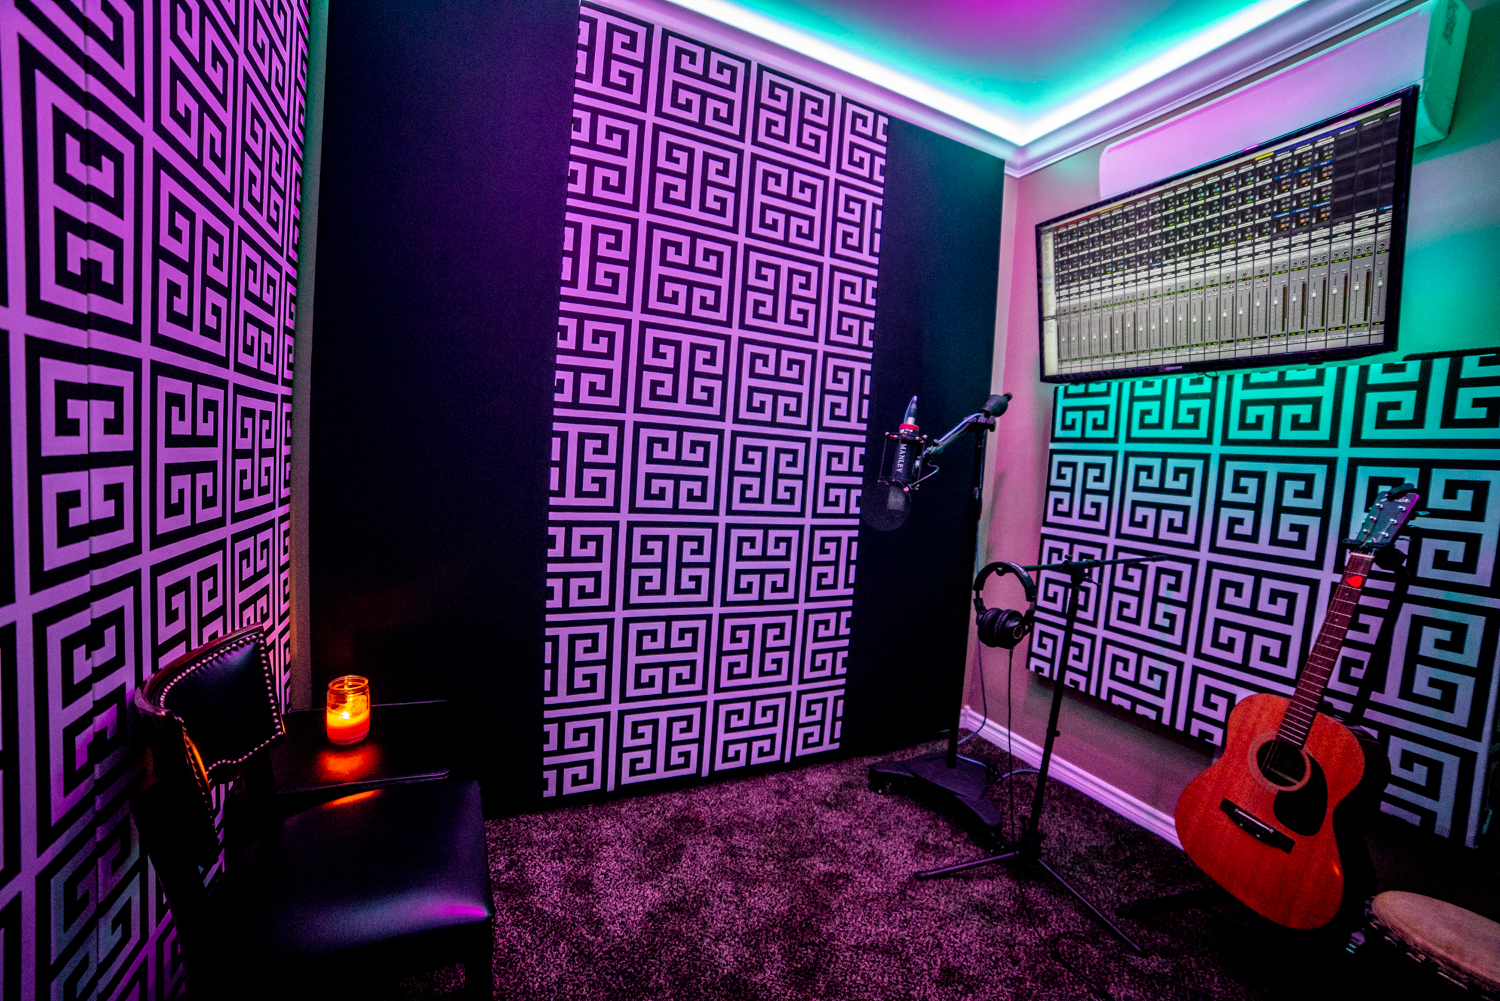 soundproof booth